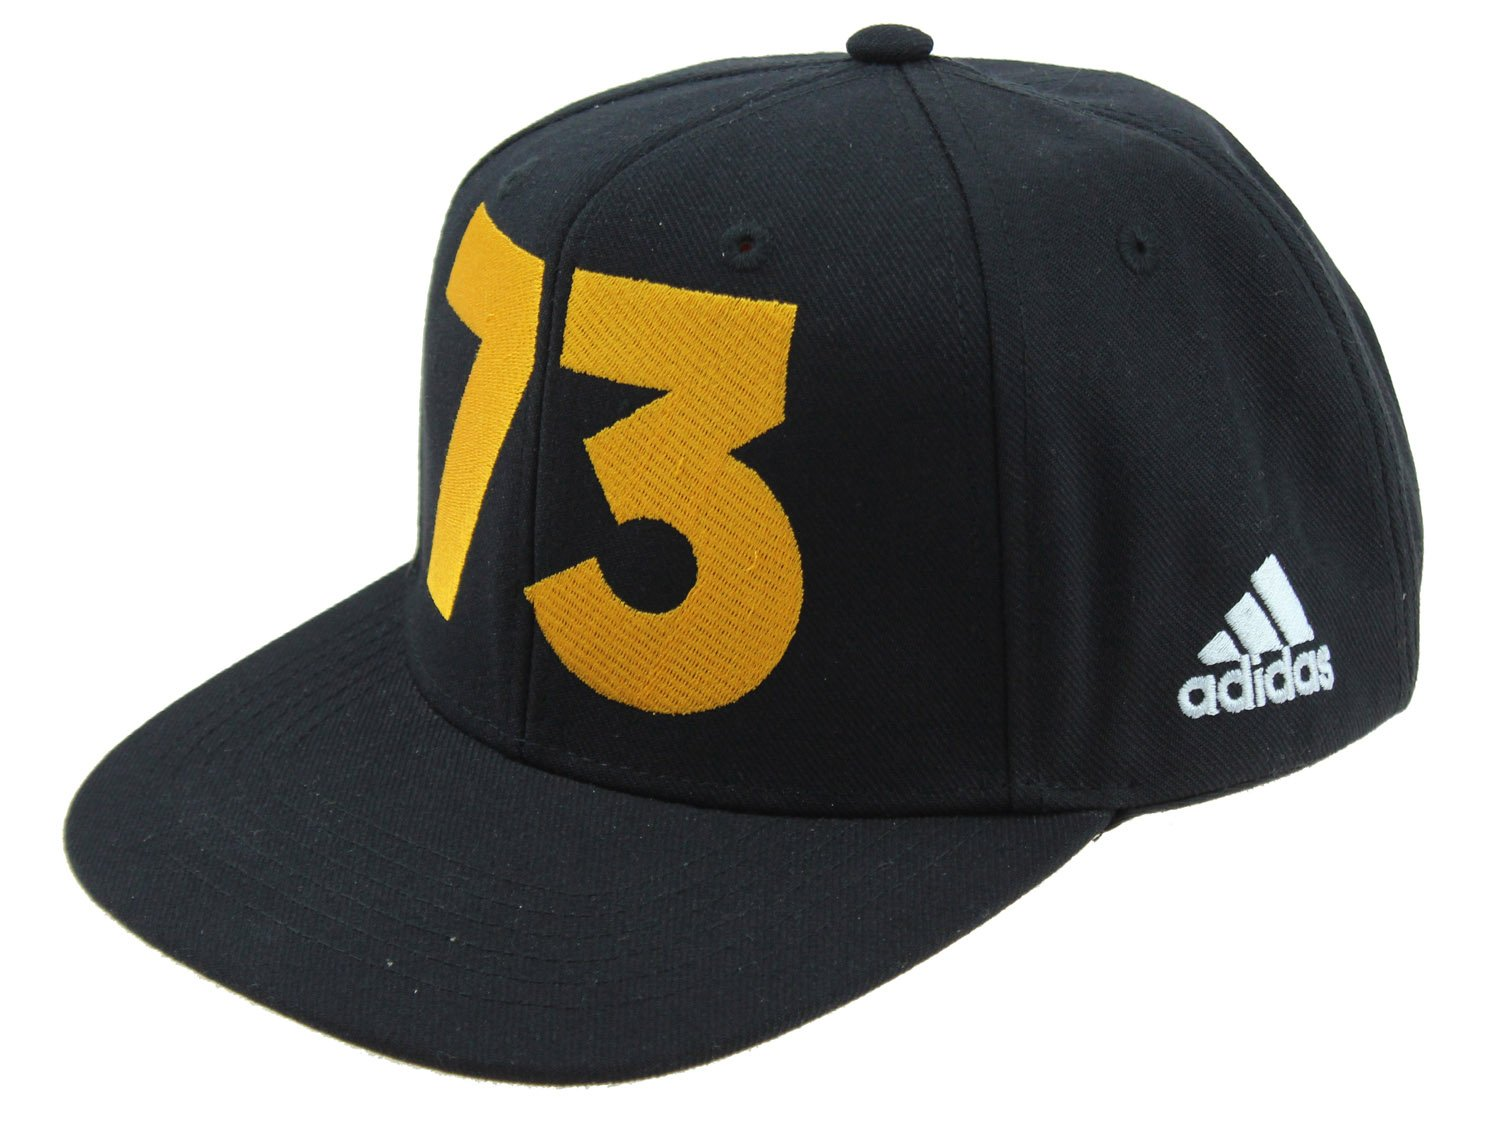 919735cf3272 spain bait x nba x new era 9fifty golden state warriors town black snapback  cap black 30234 4788f; spain amazon adidas nba mens golden state warriors  record ...